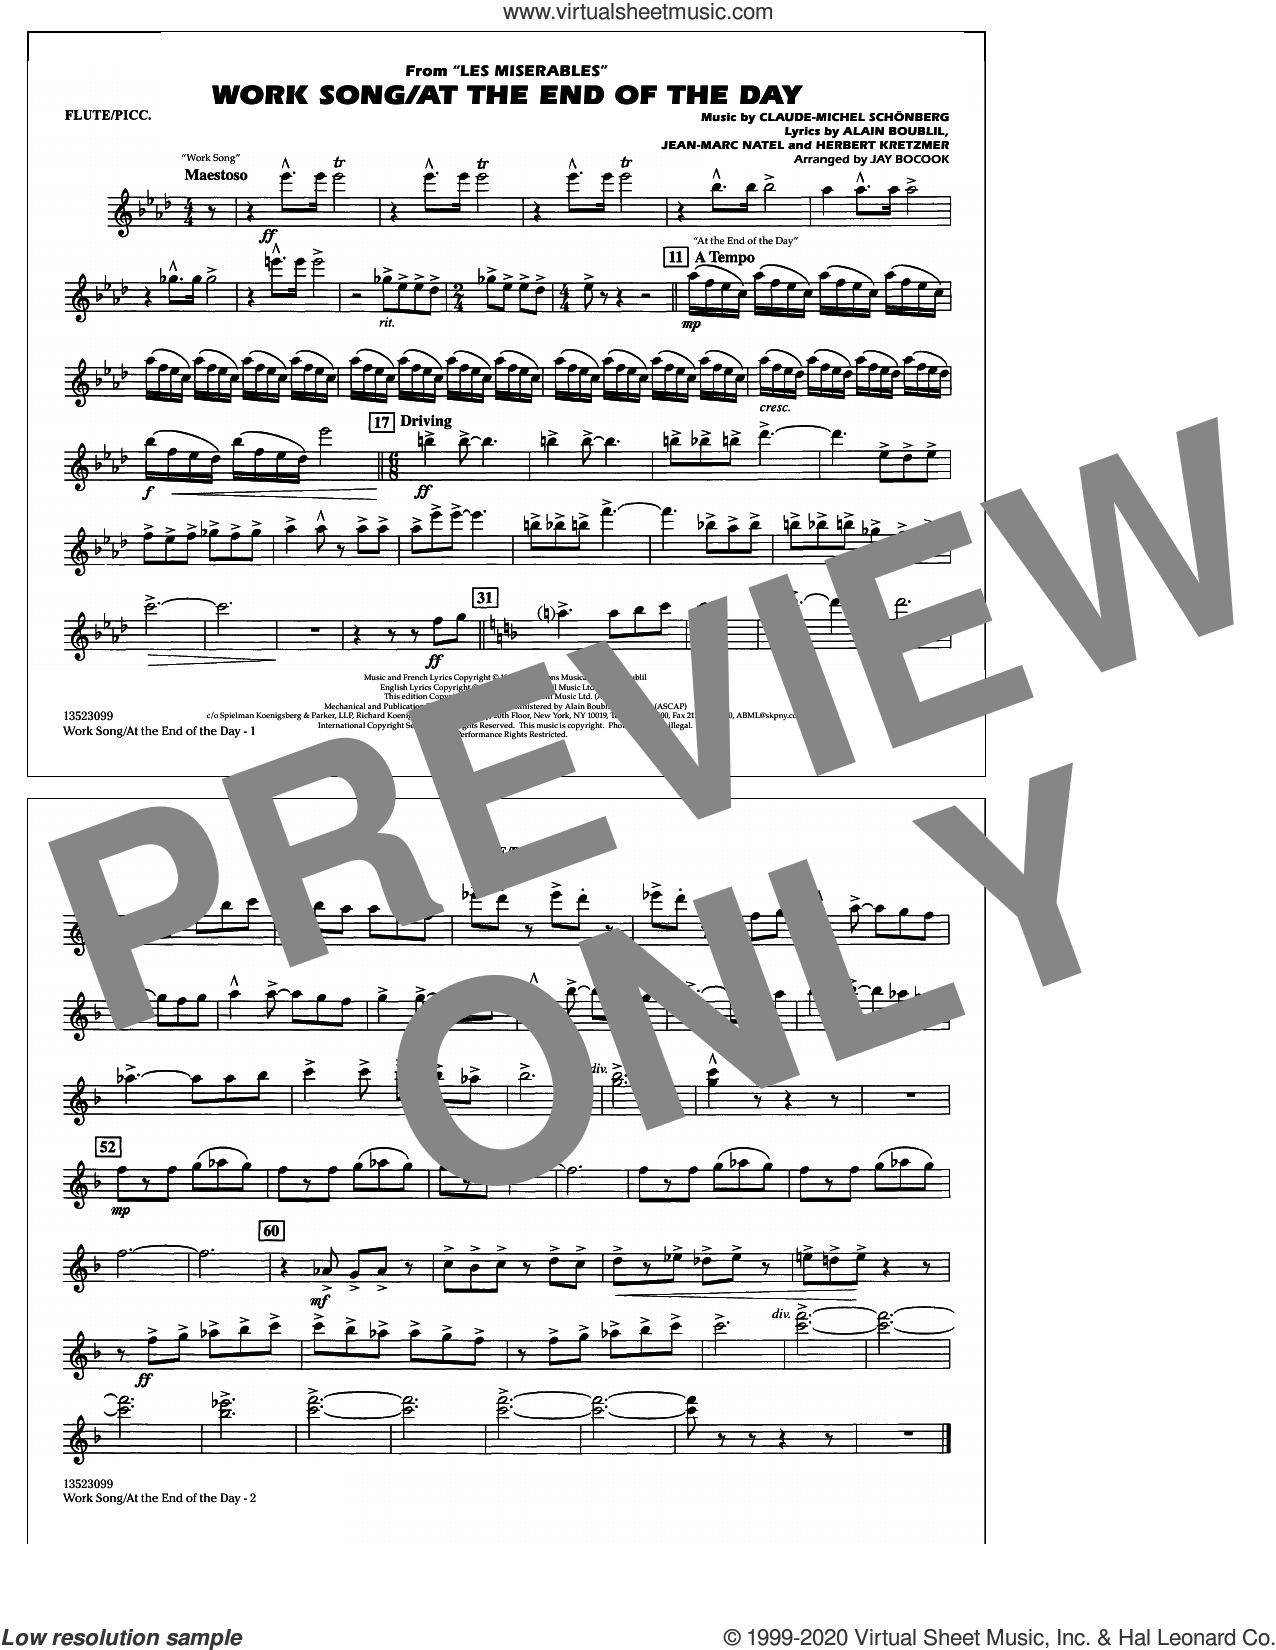 Work Song/At the End of the Day (Les Miserables) (arr. Jay Bocook) sheet music for marching band (flute/piccolo) by Claude-Michel Schonberg, Jay Bocook, Alain Boublil, Boublil & Schonberg, Herbert Kretzmer and Jean-Marc Natel, intermediate skill level